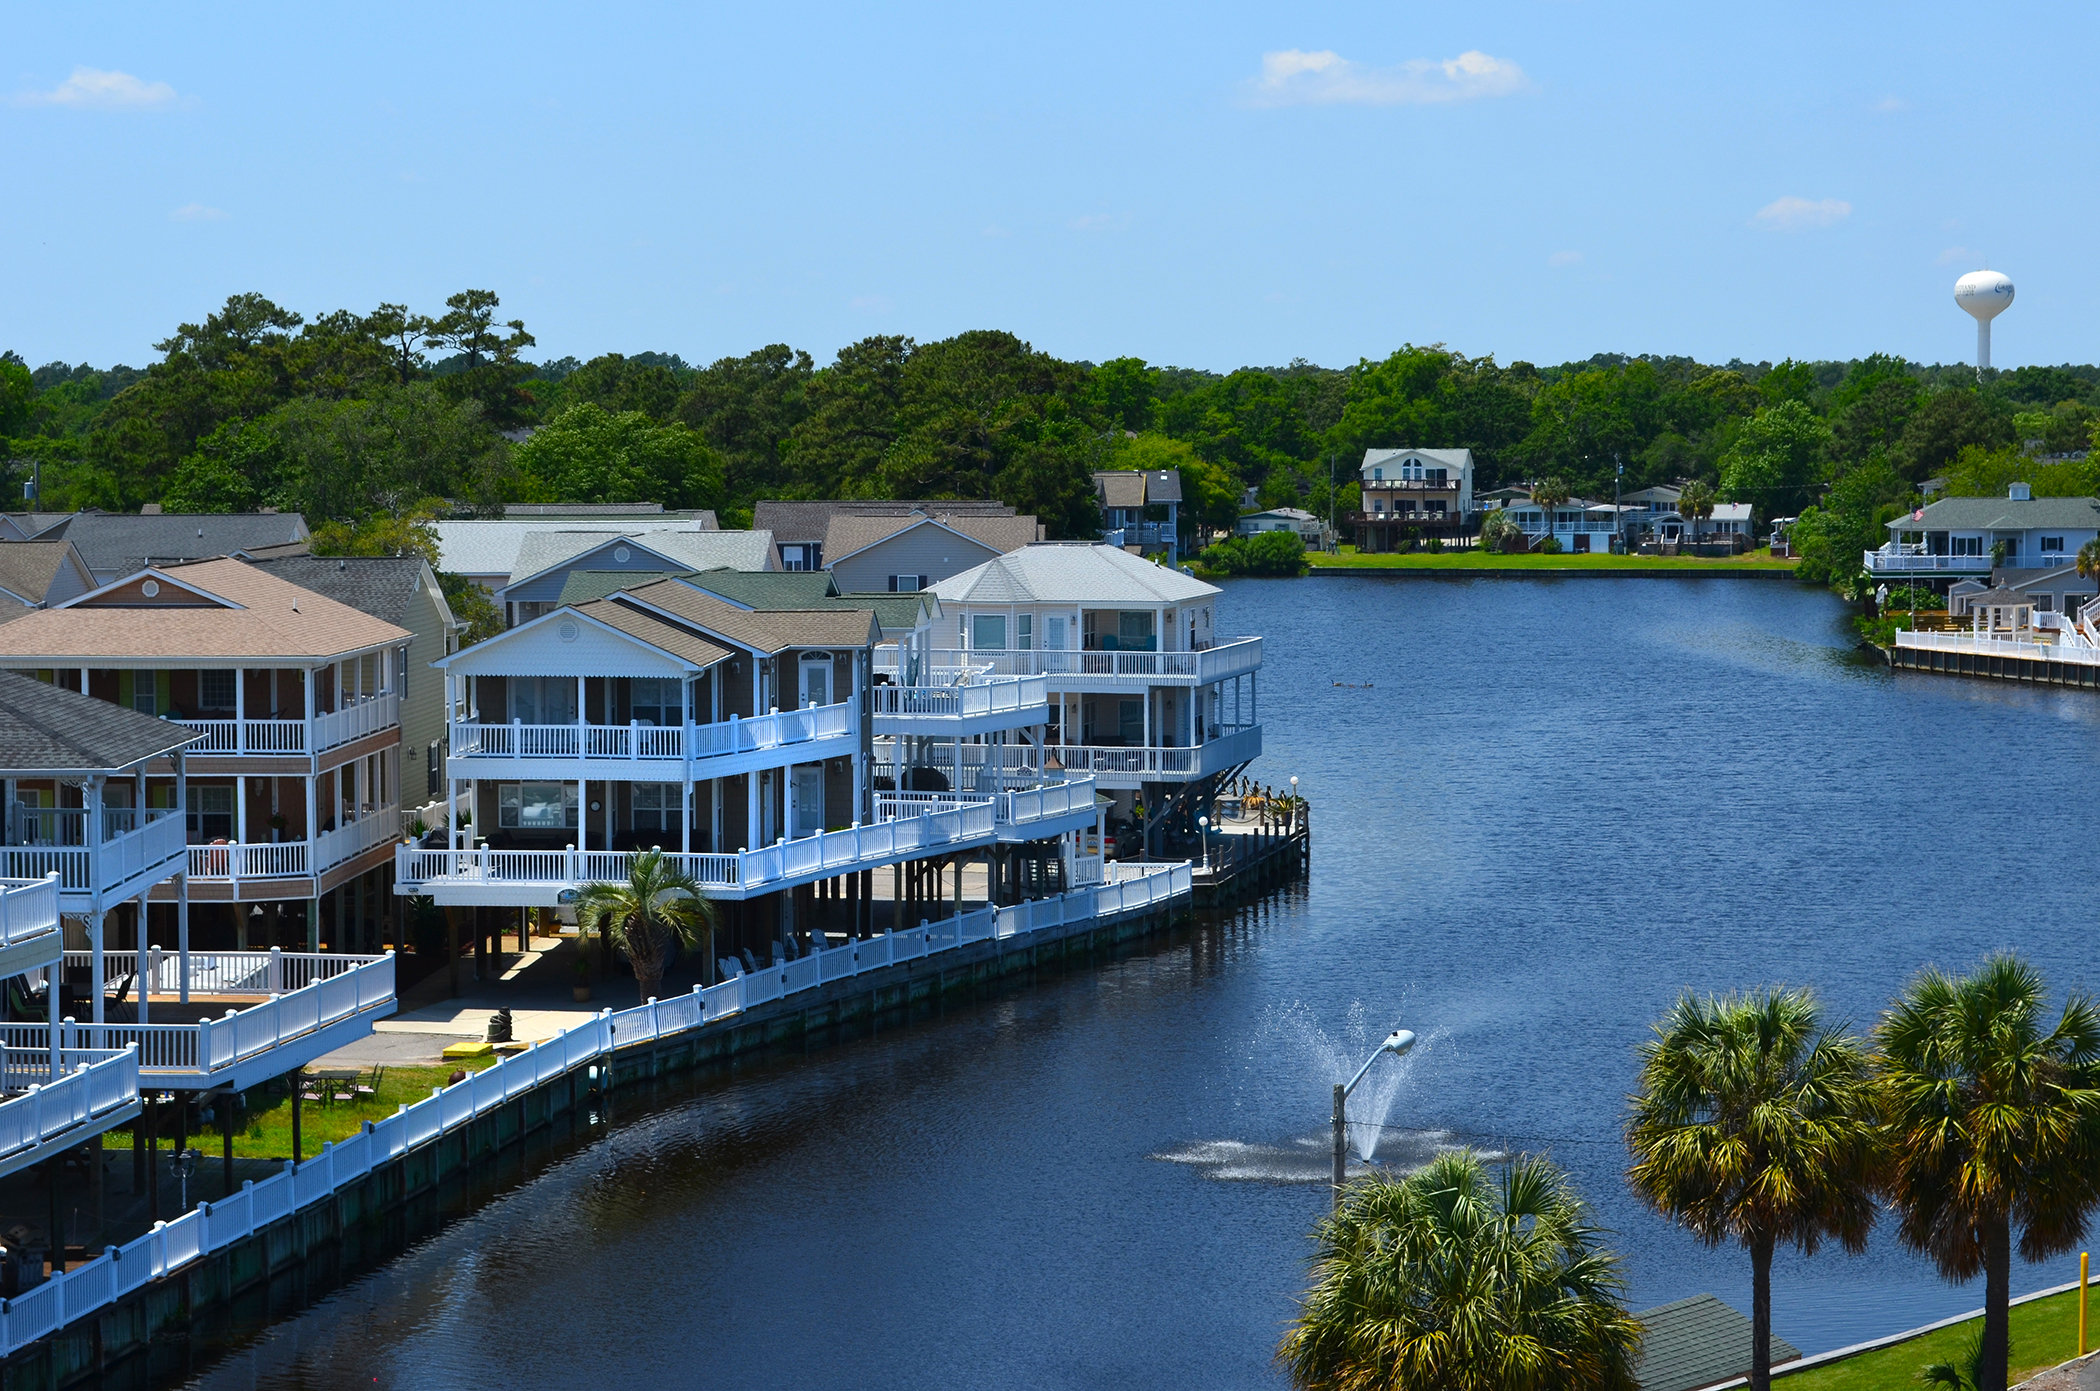 Myrtle Beach S Ocean Lakes Family Campground Is Named One